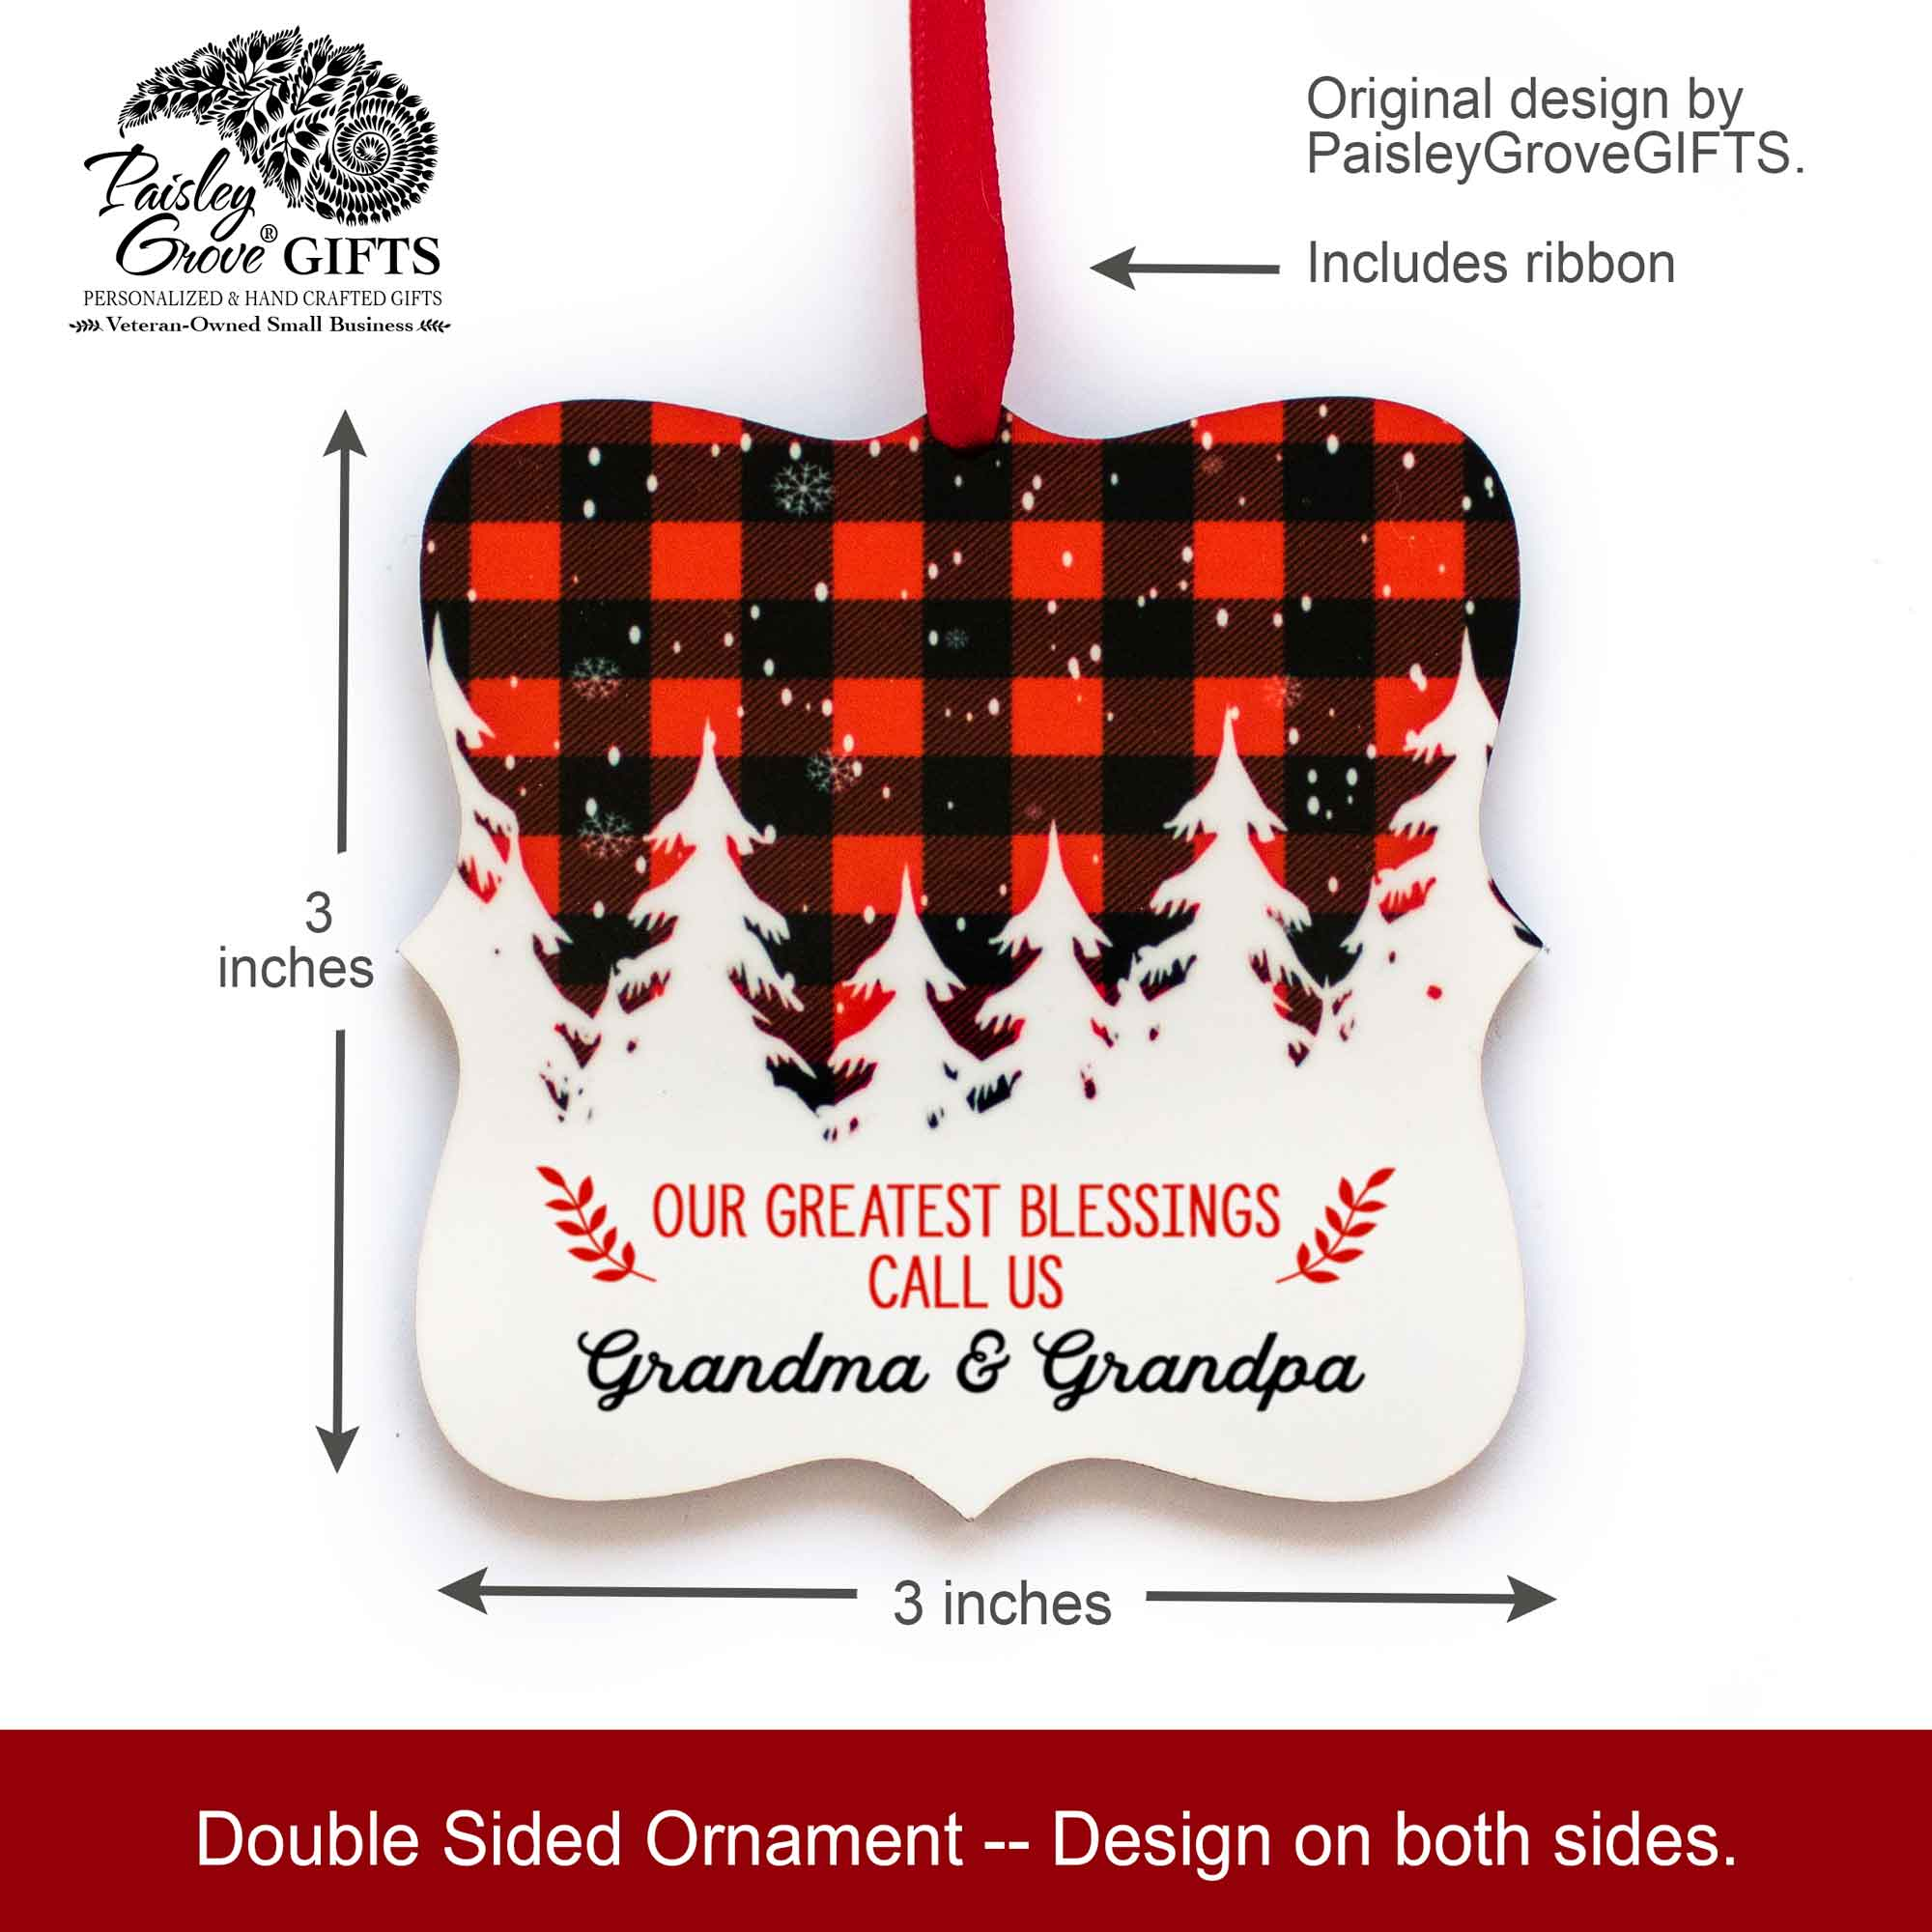 CopyrightPaisleyGroveGIFTS S502e5 3x3 inch Holiday Ornament Sentimental Grandparent Keepsake Gift from Grandchildren